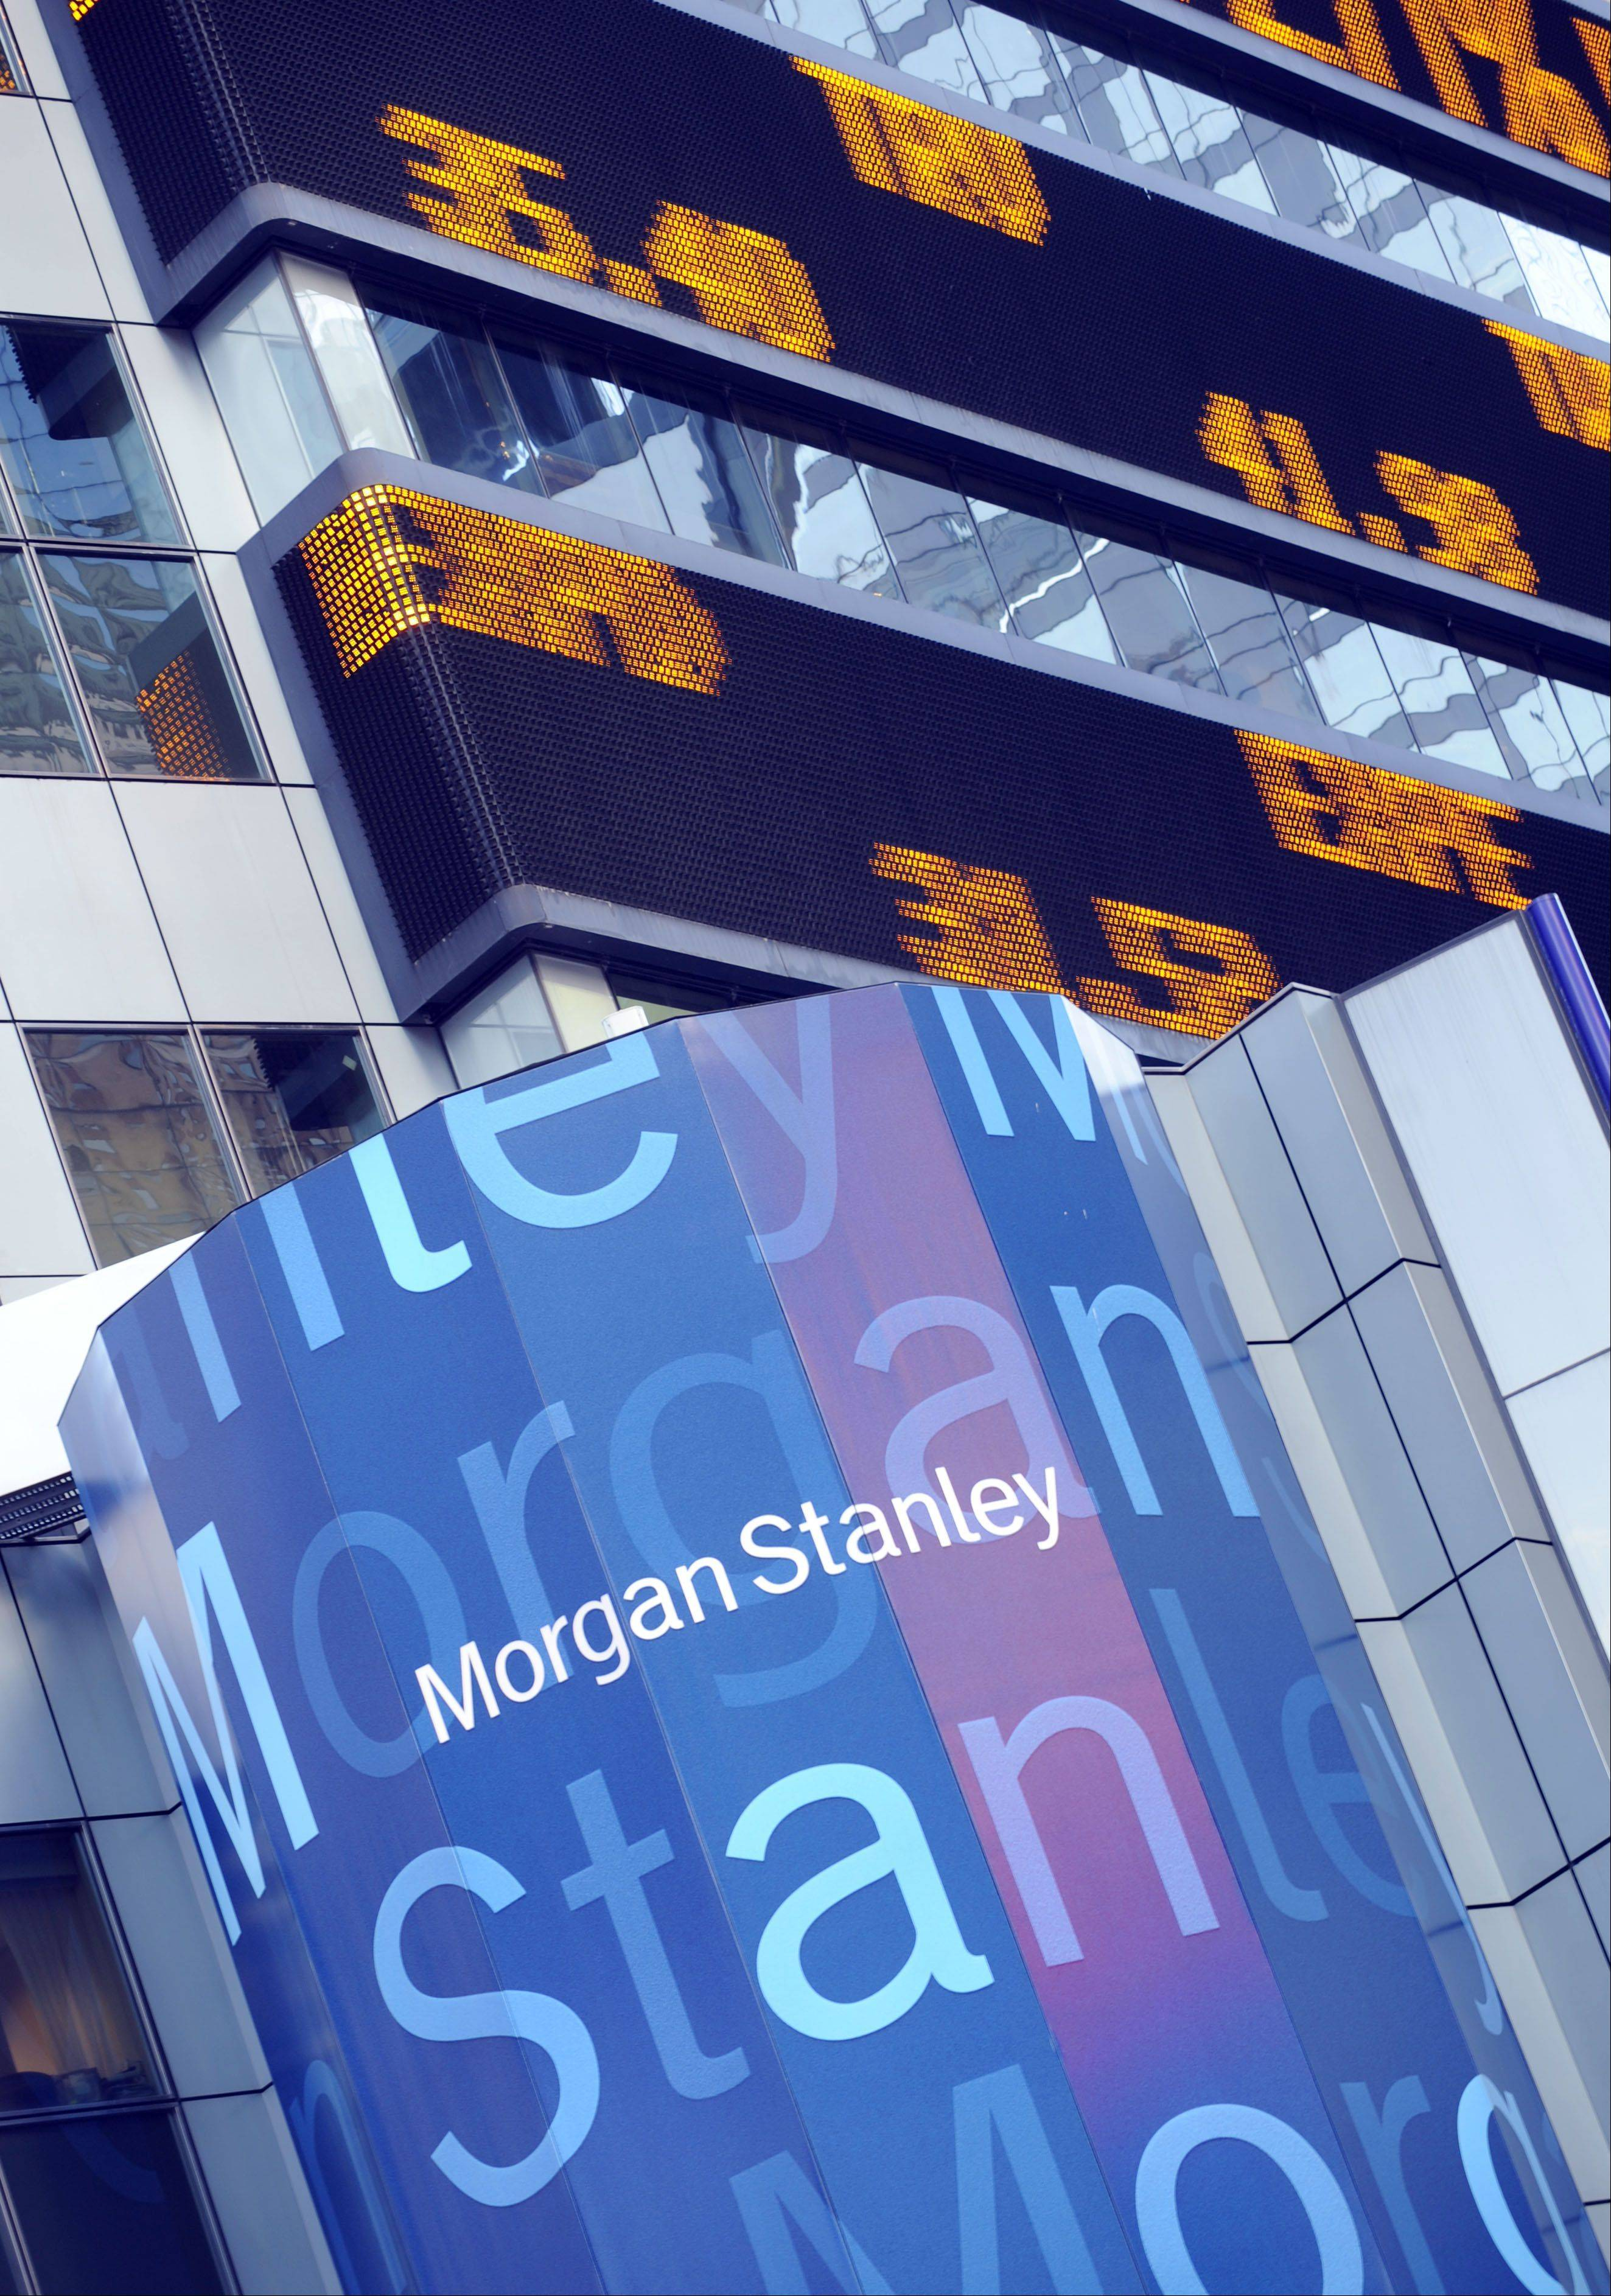 The Federal Reserve says Morgan Stanley will review foreclosures carried out by its old mortgage subsidiary and reimburse any homeowners who were improperly forced out of their homes.